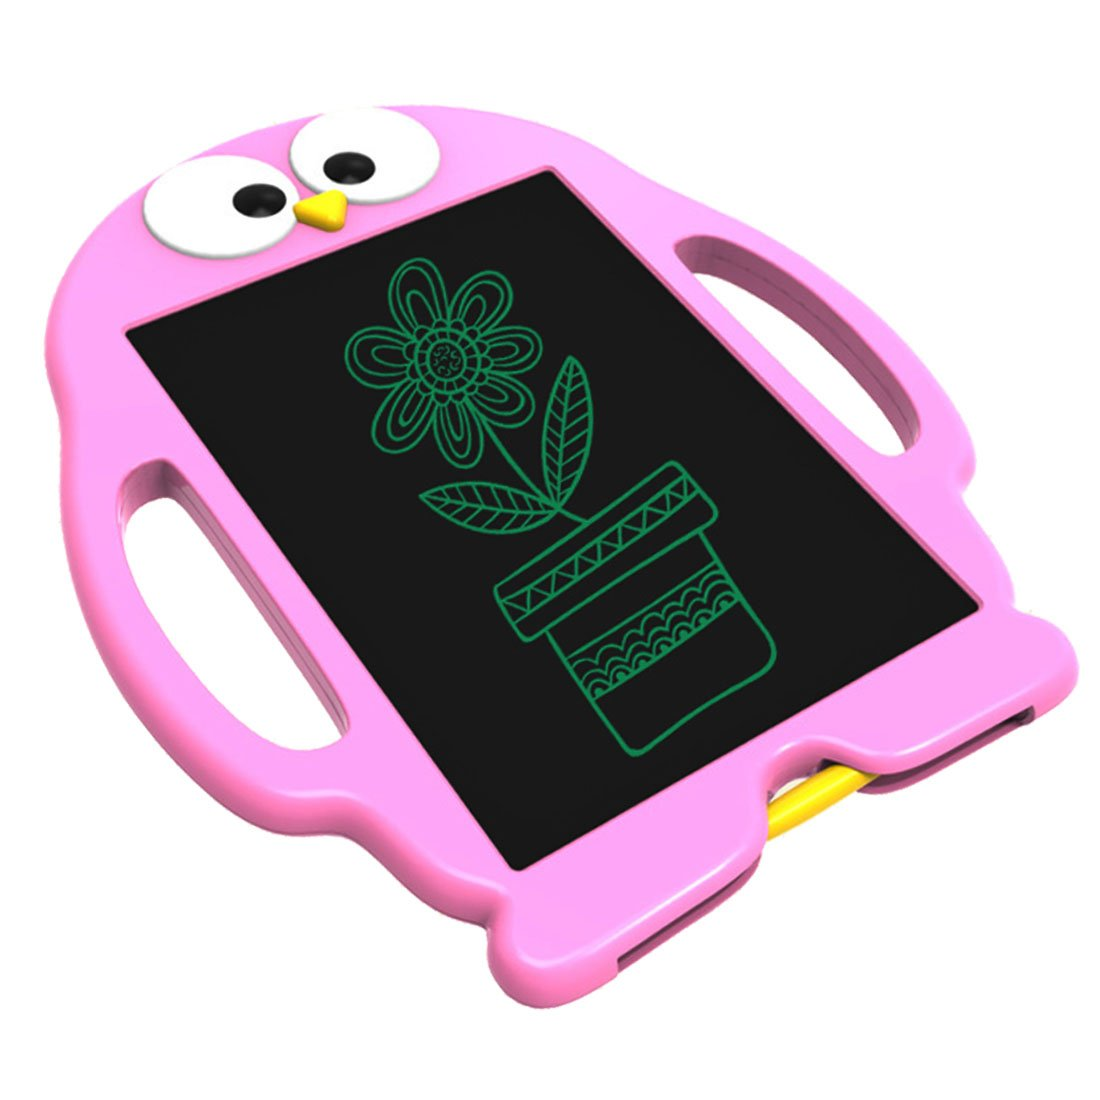 8.5 Inch LCD Writing Tablet- Electronic Eye Protect Drawing Board Graphic Painting Doodle Pad Memo Note with Stylus,Erase Button Lock Design,Gift for kids Adults in Home School Work Office (Pink)